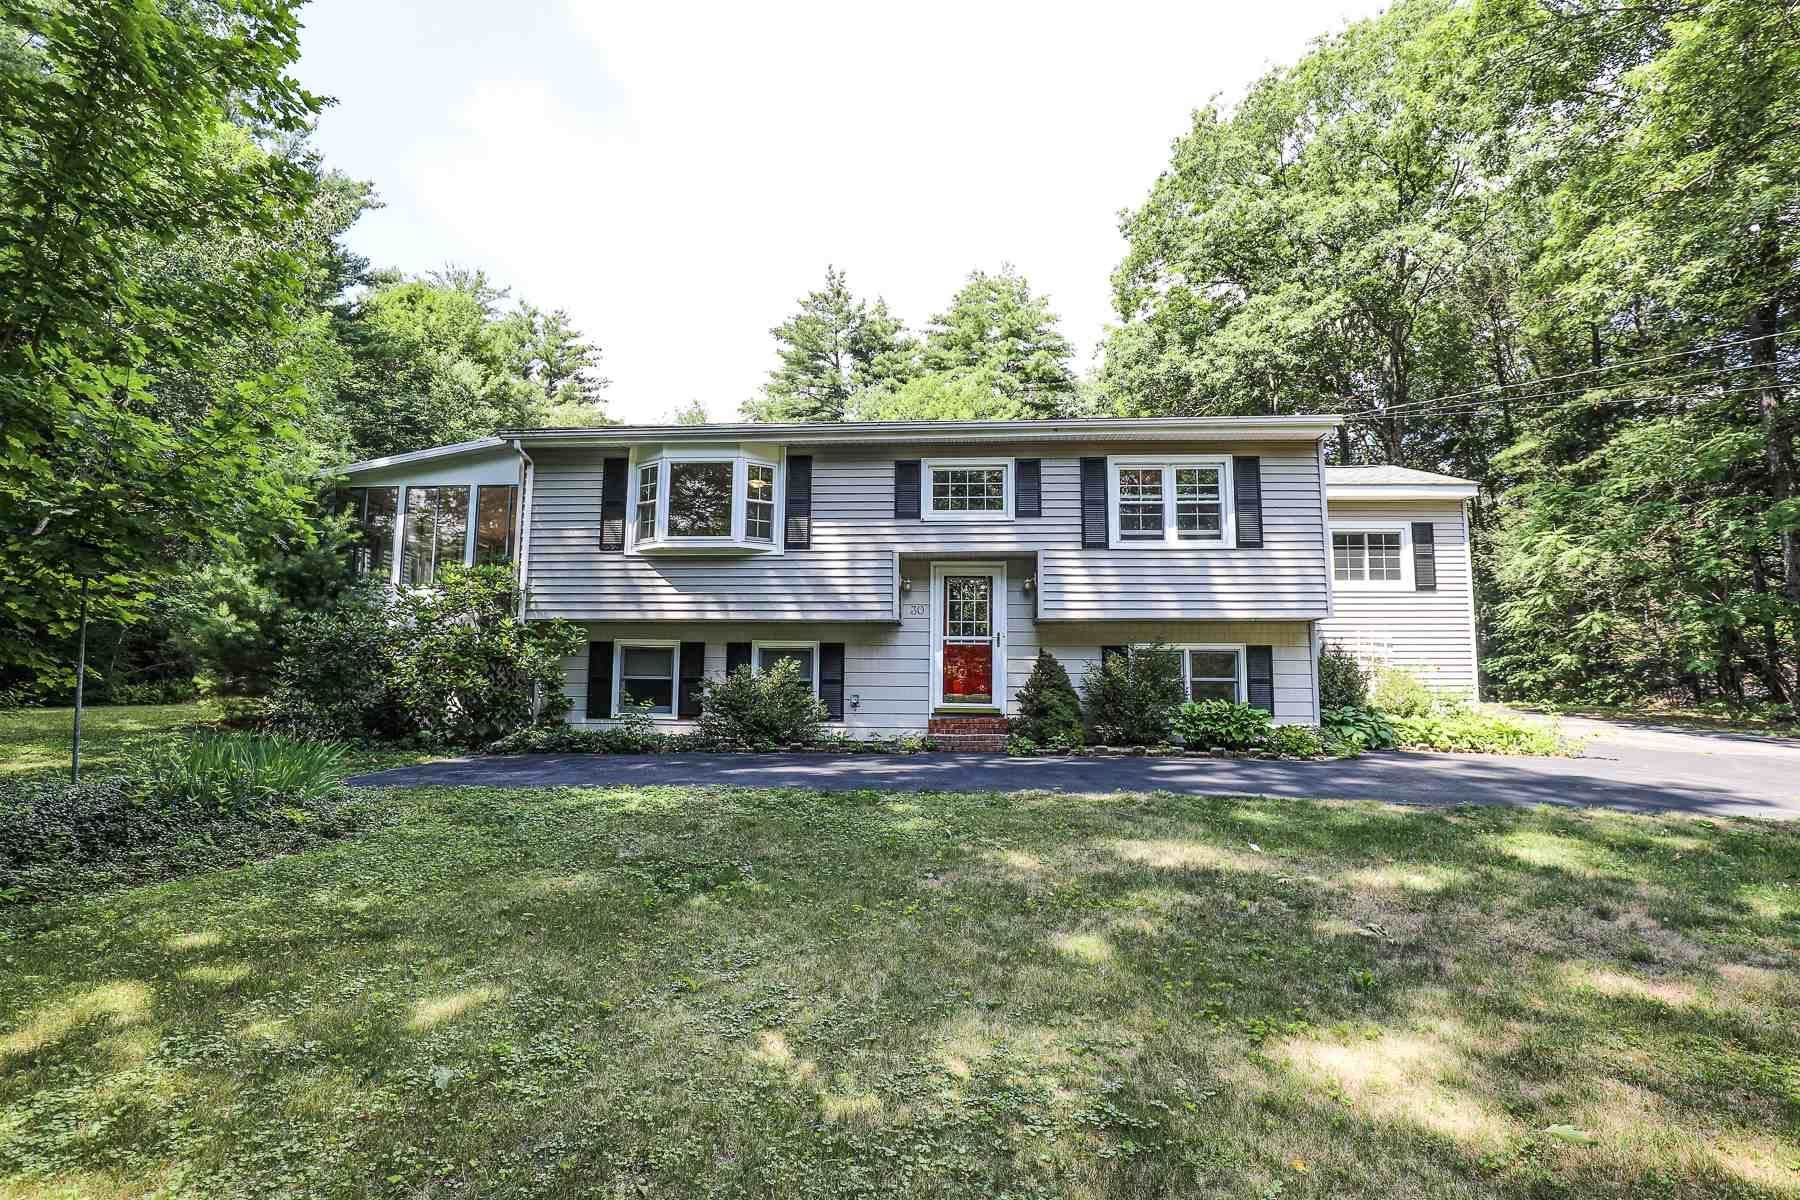 30 Polly Peabody Road, Bedford, NH 03110 - #: 4816425